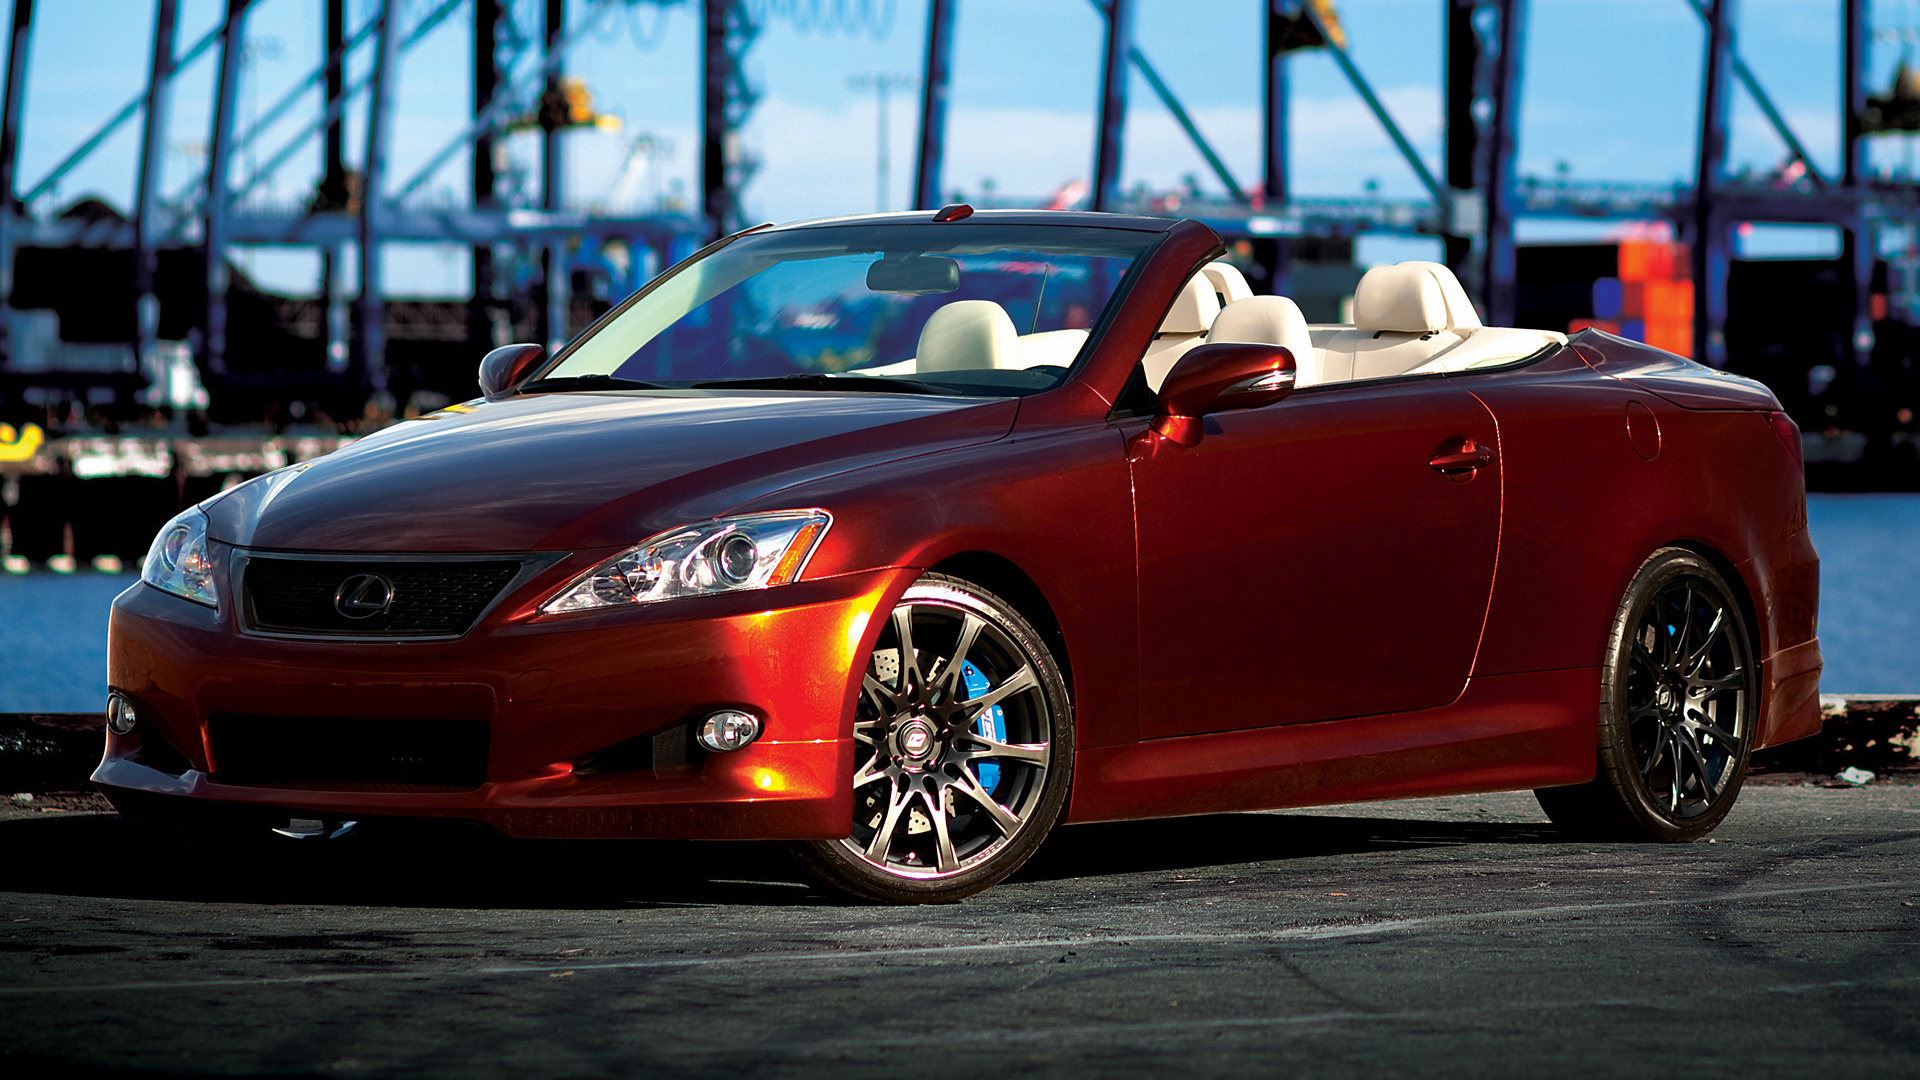 All Car Wallpapers Hd 2009 Lexus Is Convertible F Sport By Trd Wallpapers And